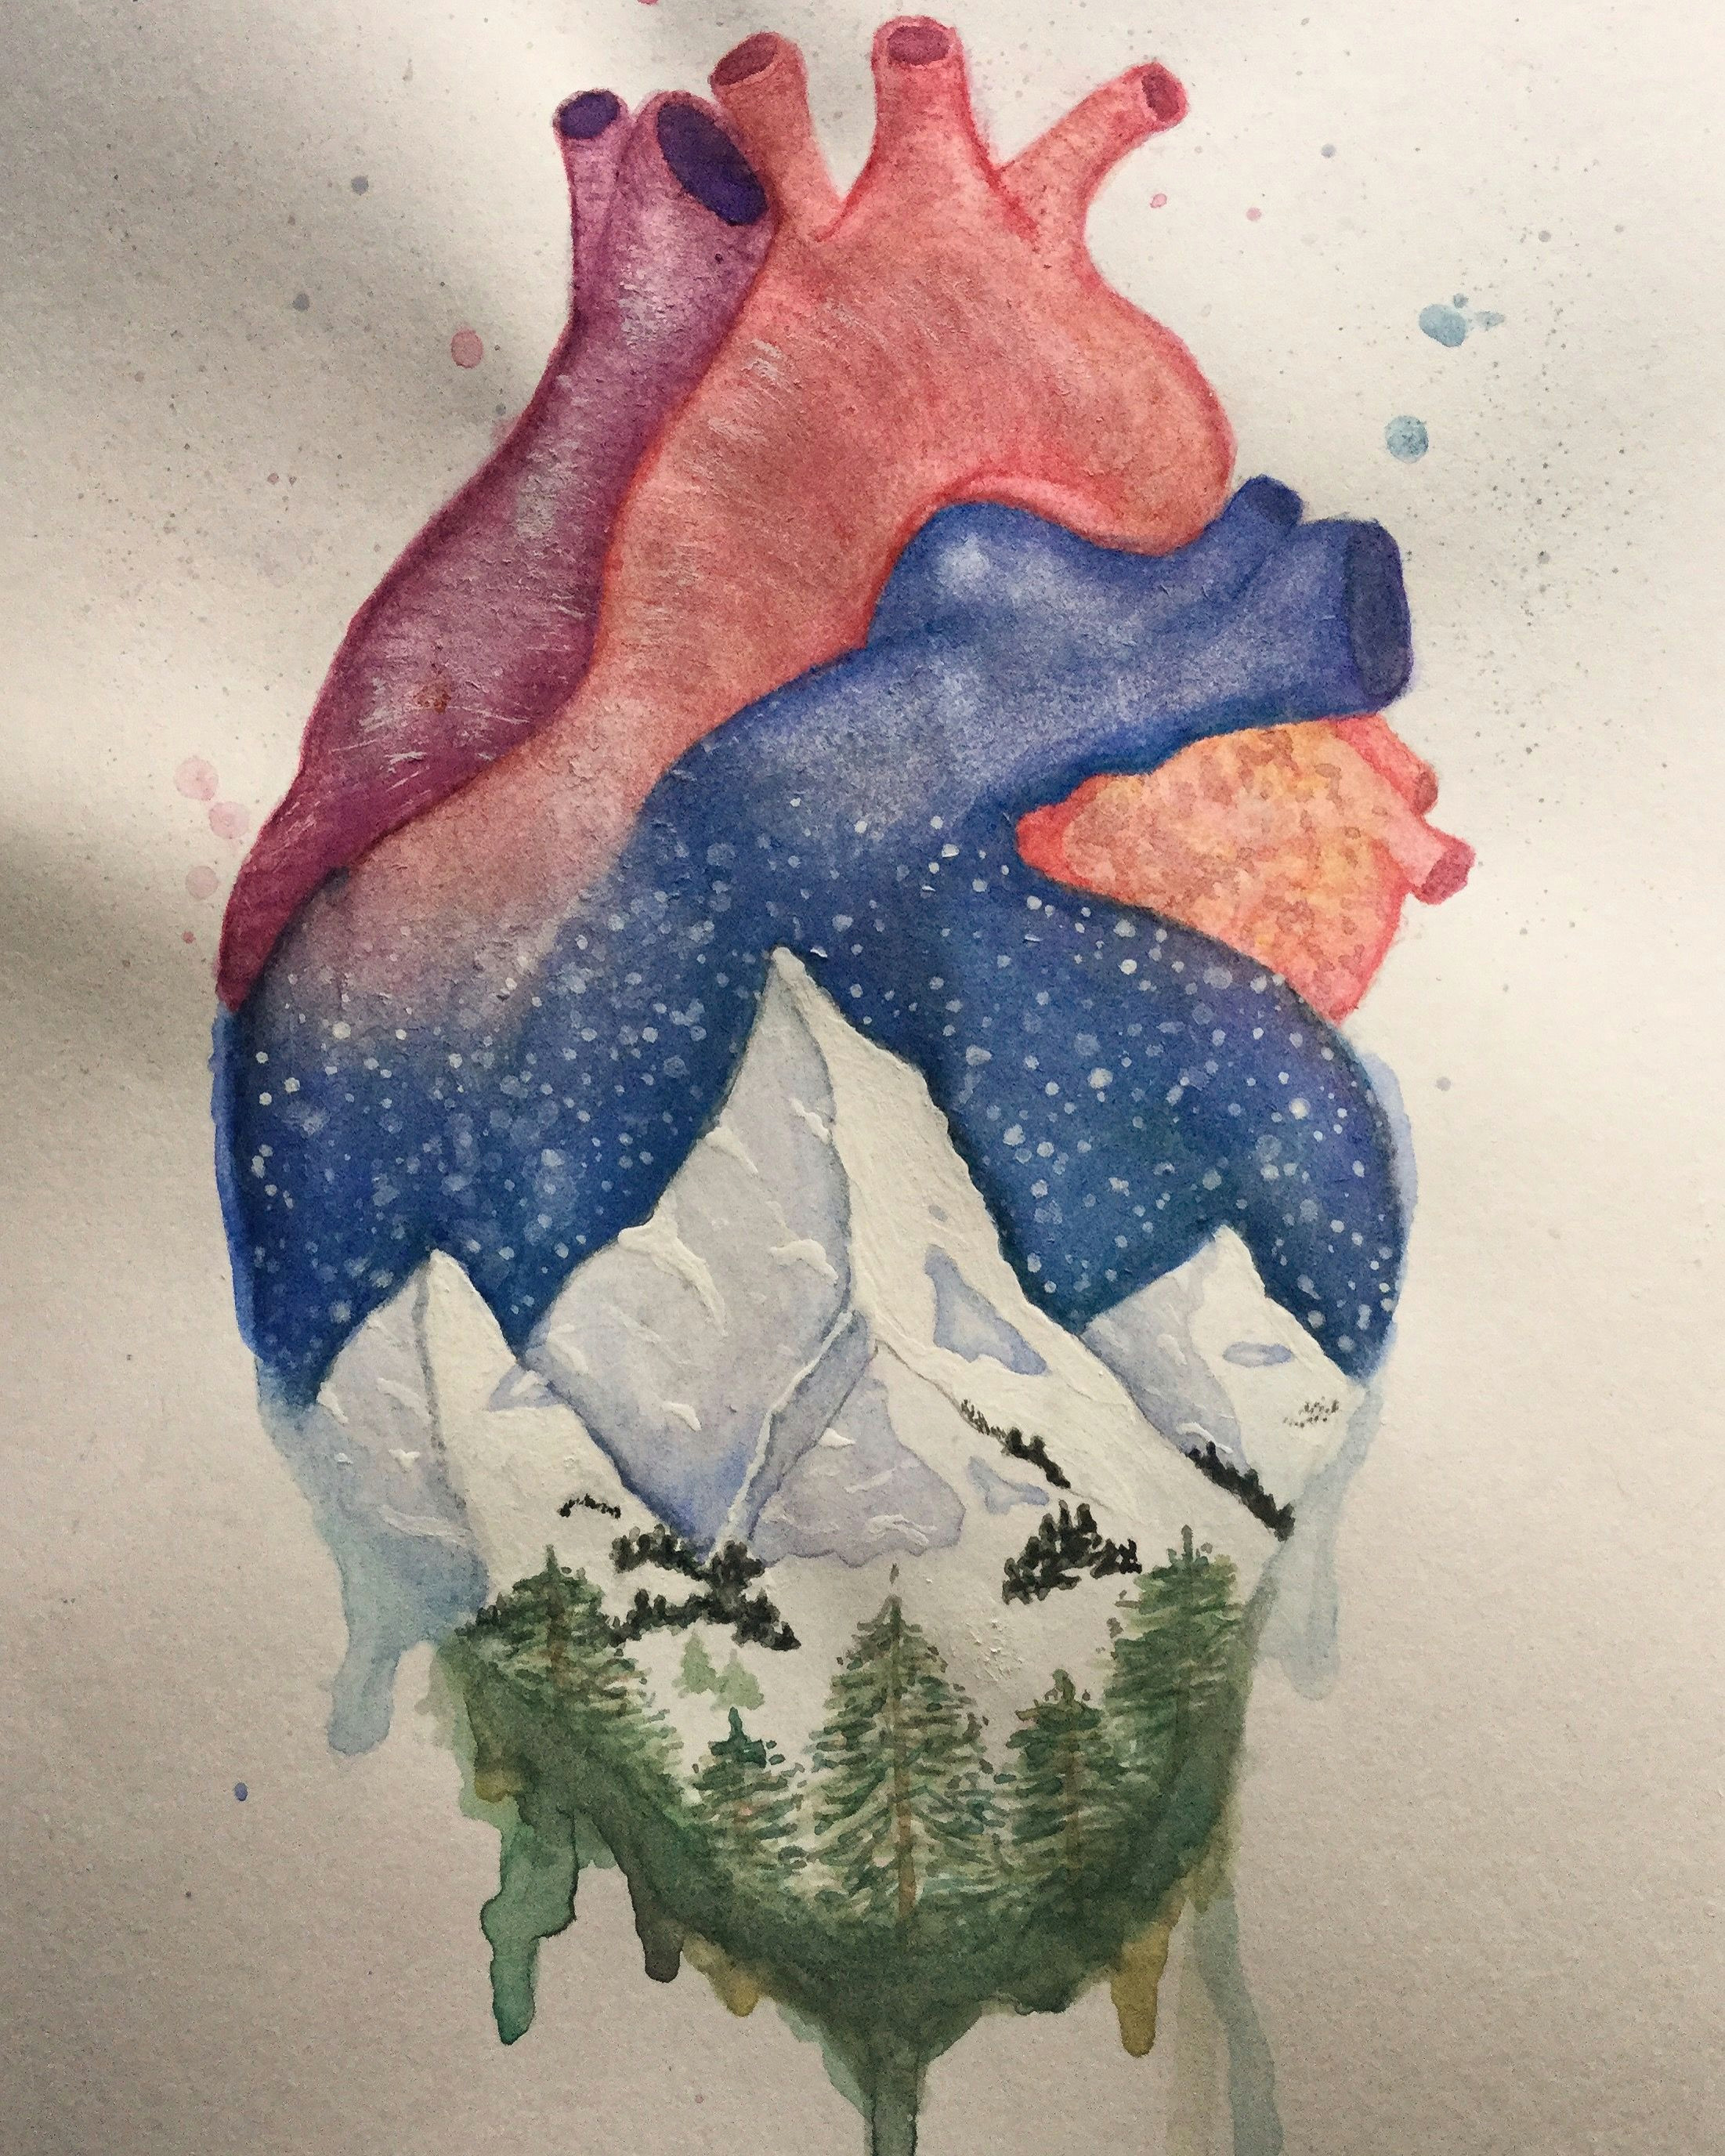 anatomical heart and winter mountain landscape watercolor painting